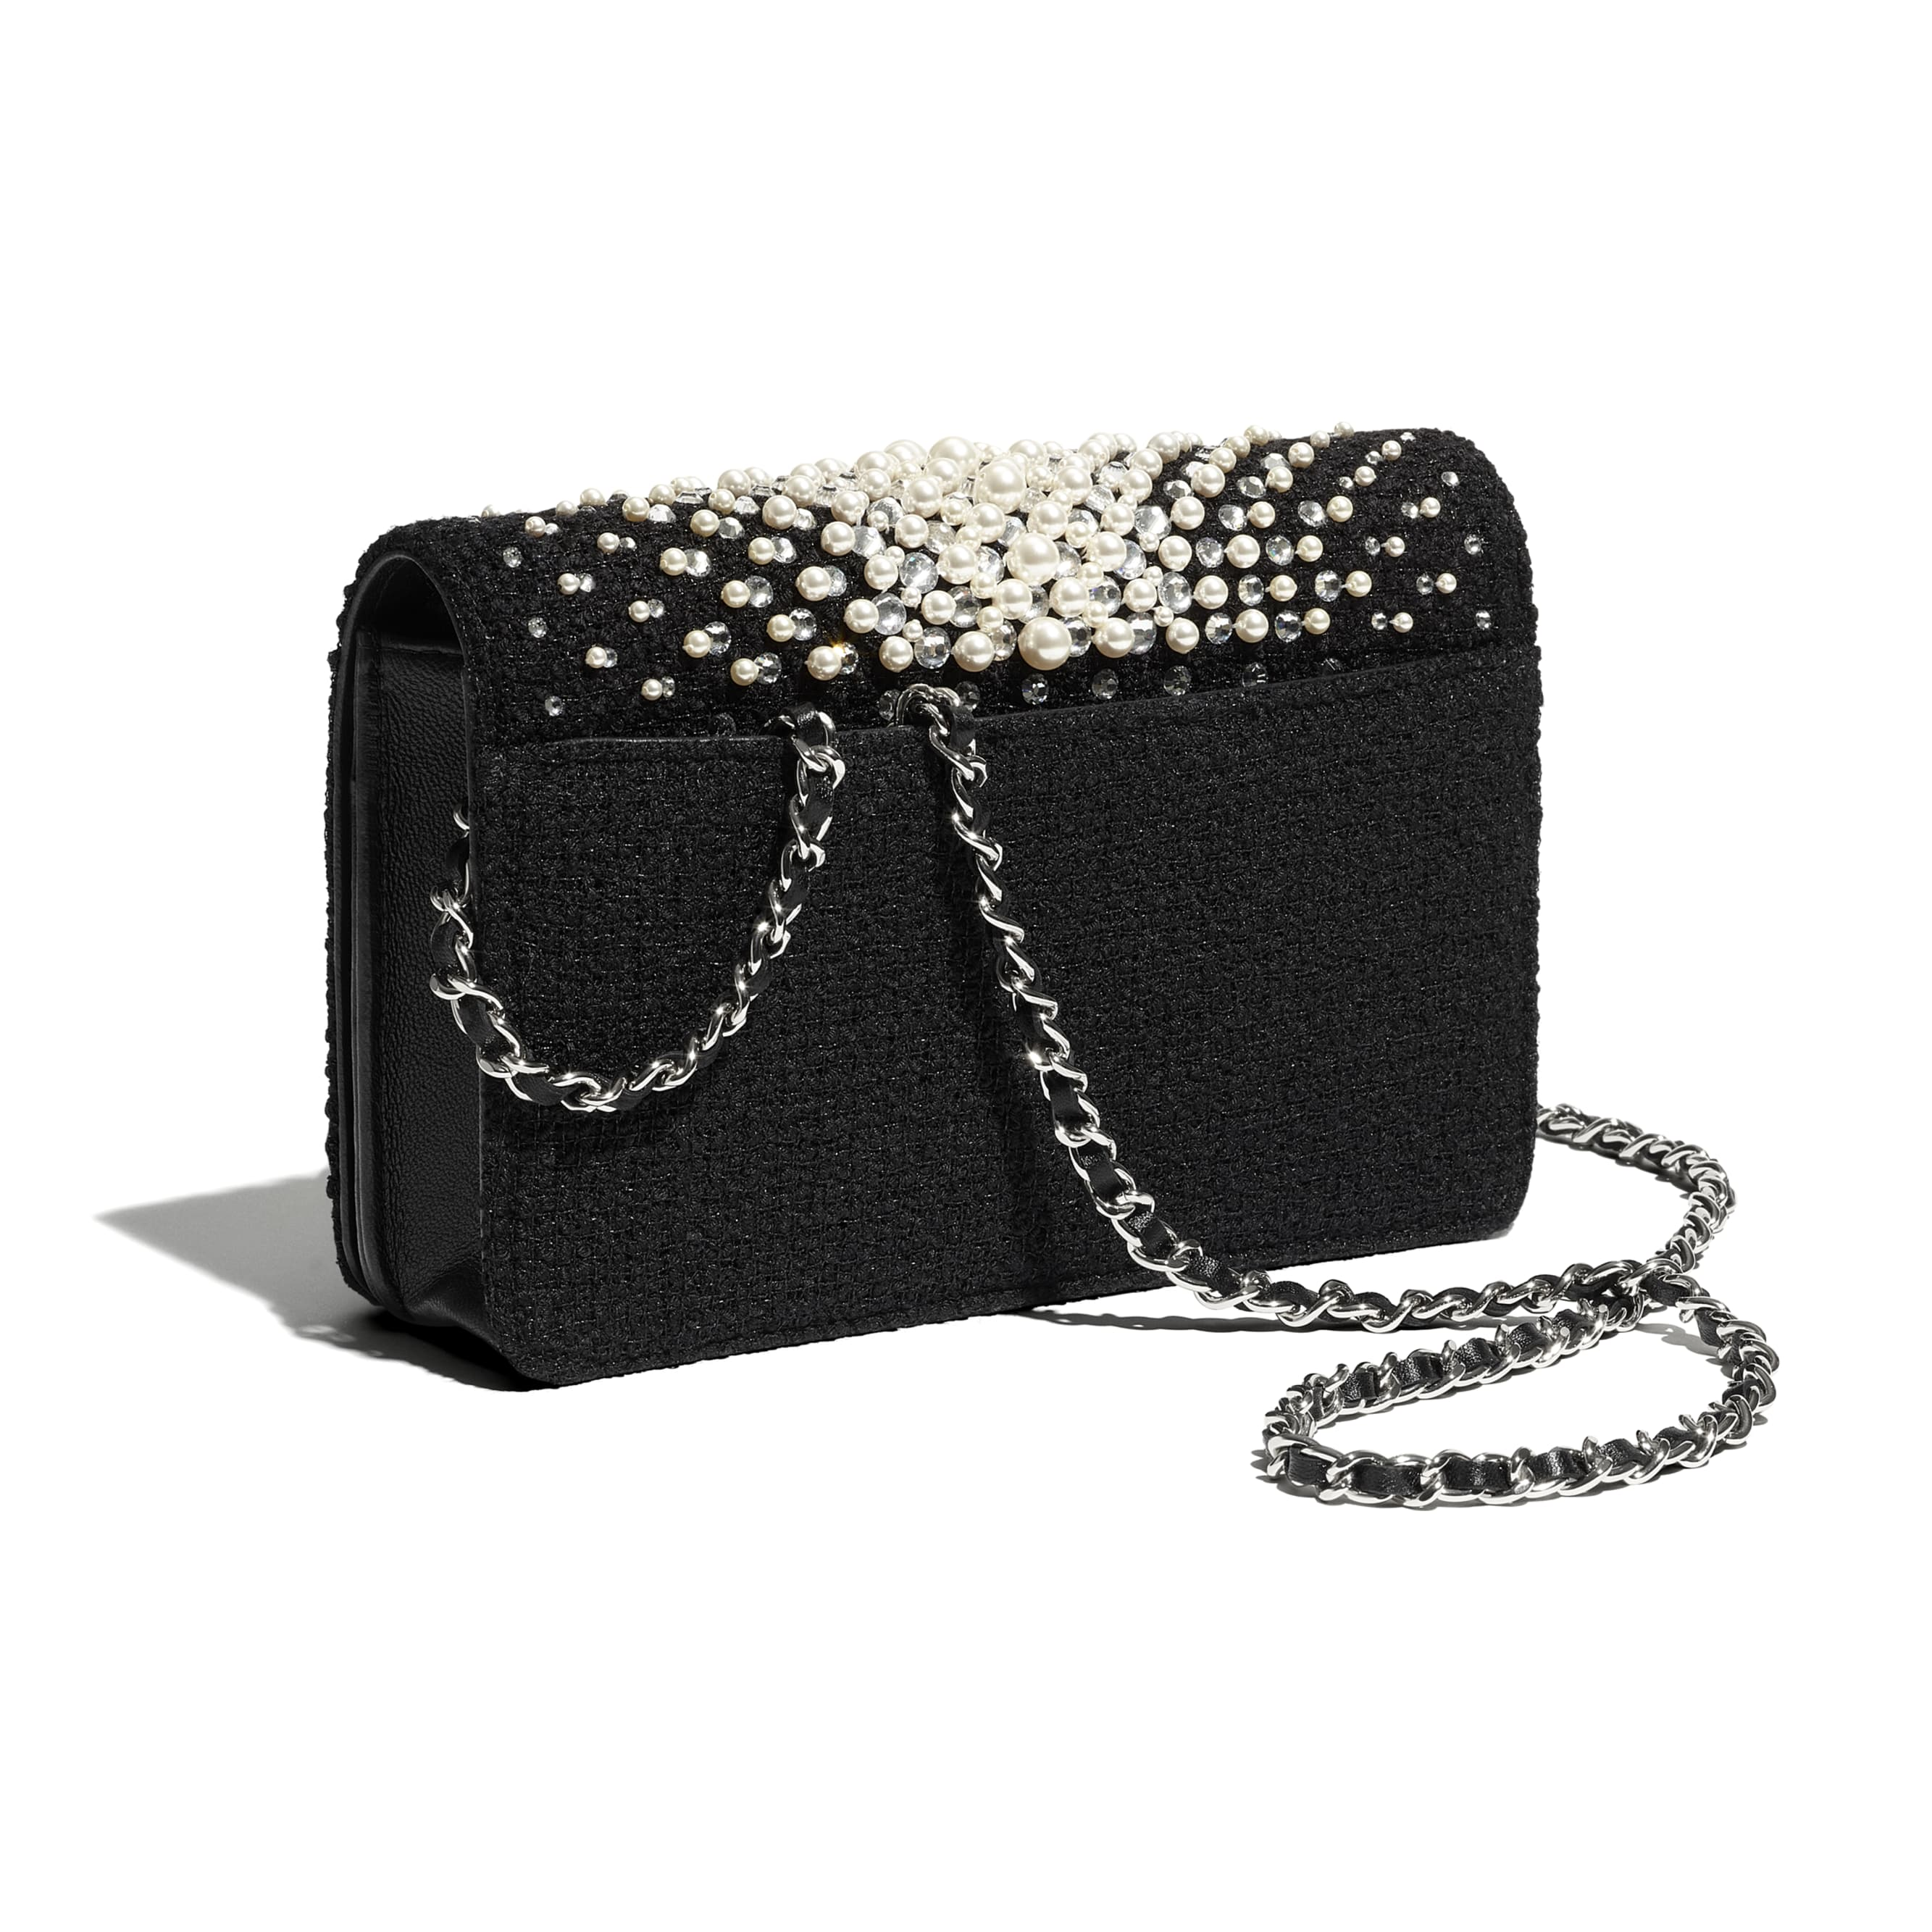 Wallet On Chain - Black - Embroidered Tweed, Crystal Pearls, Strass & Silver-Tone Metal - CHANEL - Extra view - see standard sized version